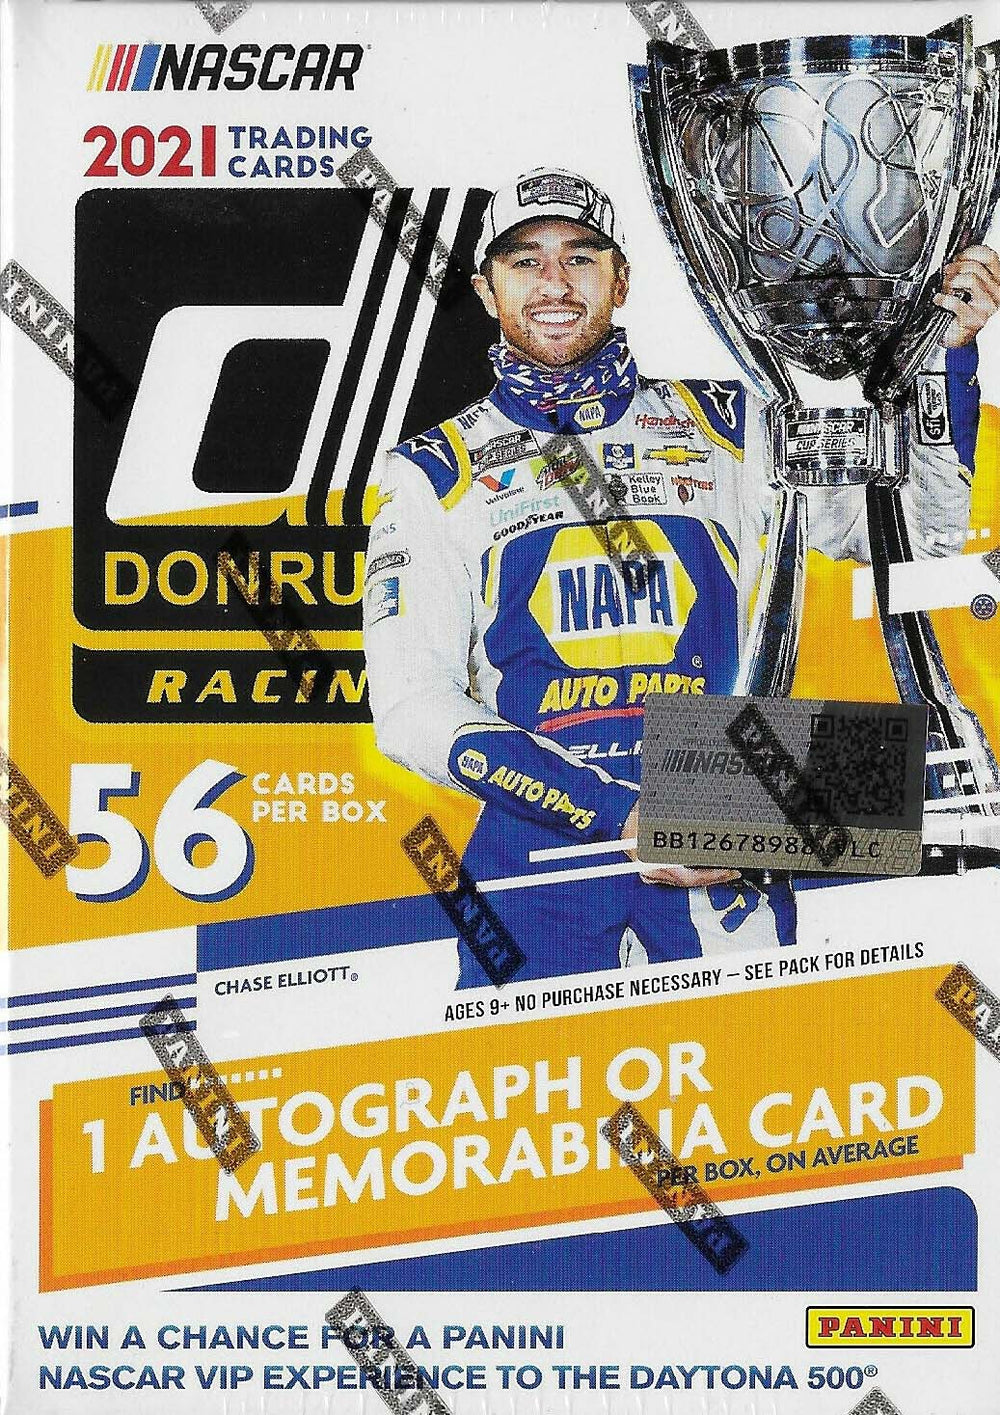 2021 Donruss Series NASCAR Blaster Box with 1 Autograph or Memorabilia Card plus Chance at Retail EXCLUSIVE CHECKERS